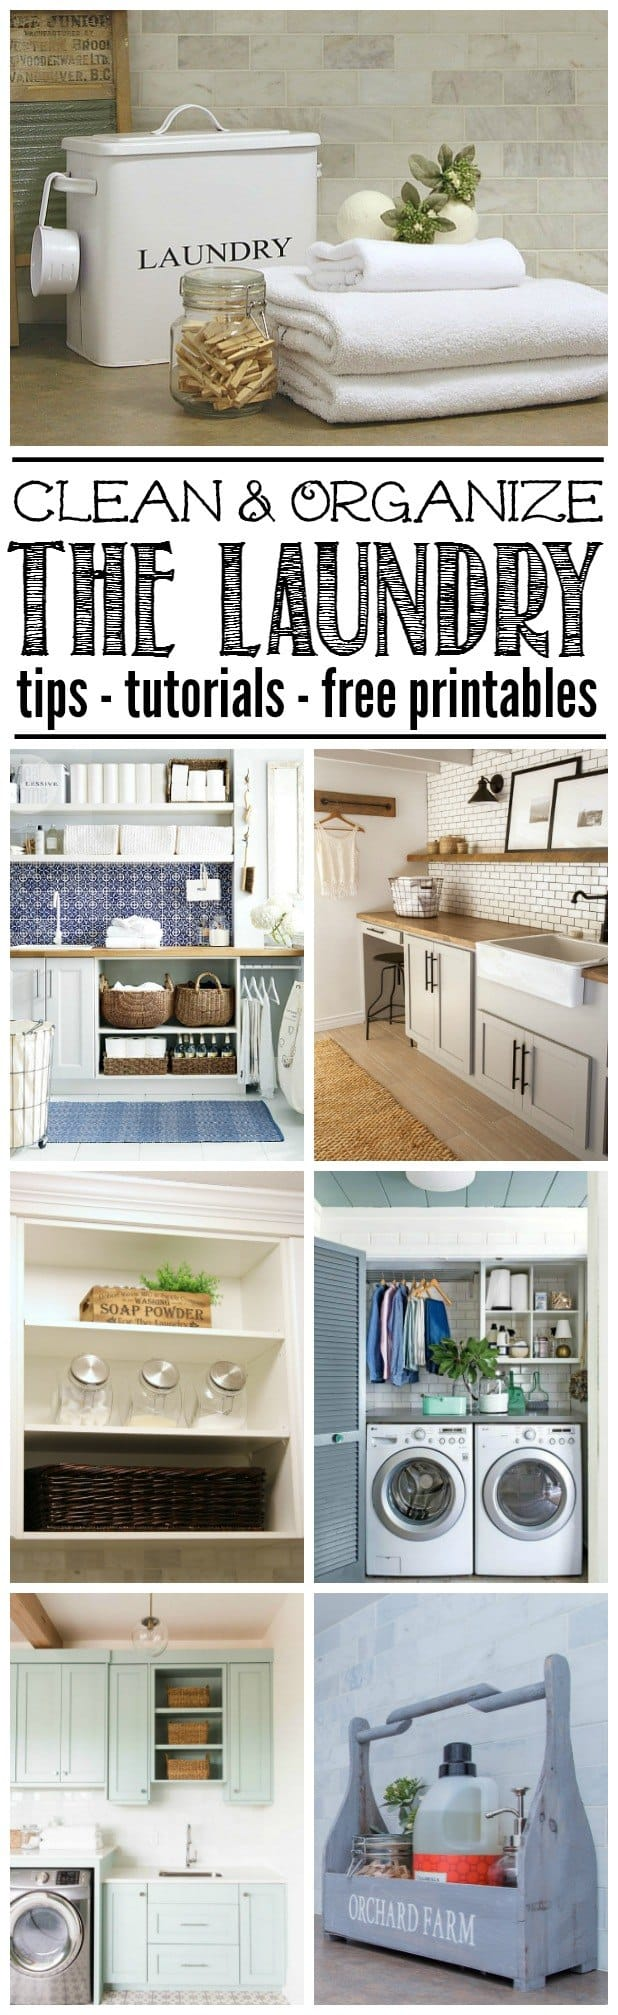 How-to-Organize-the-Laundry-Room-Title